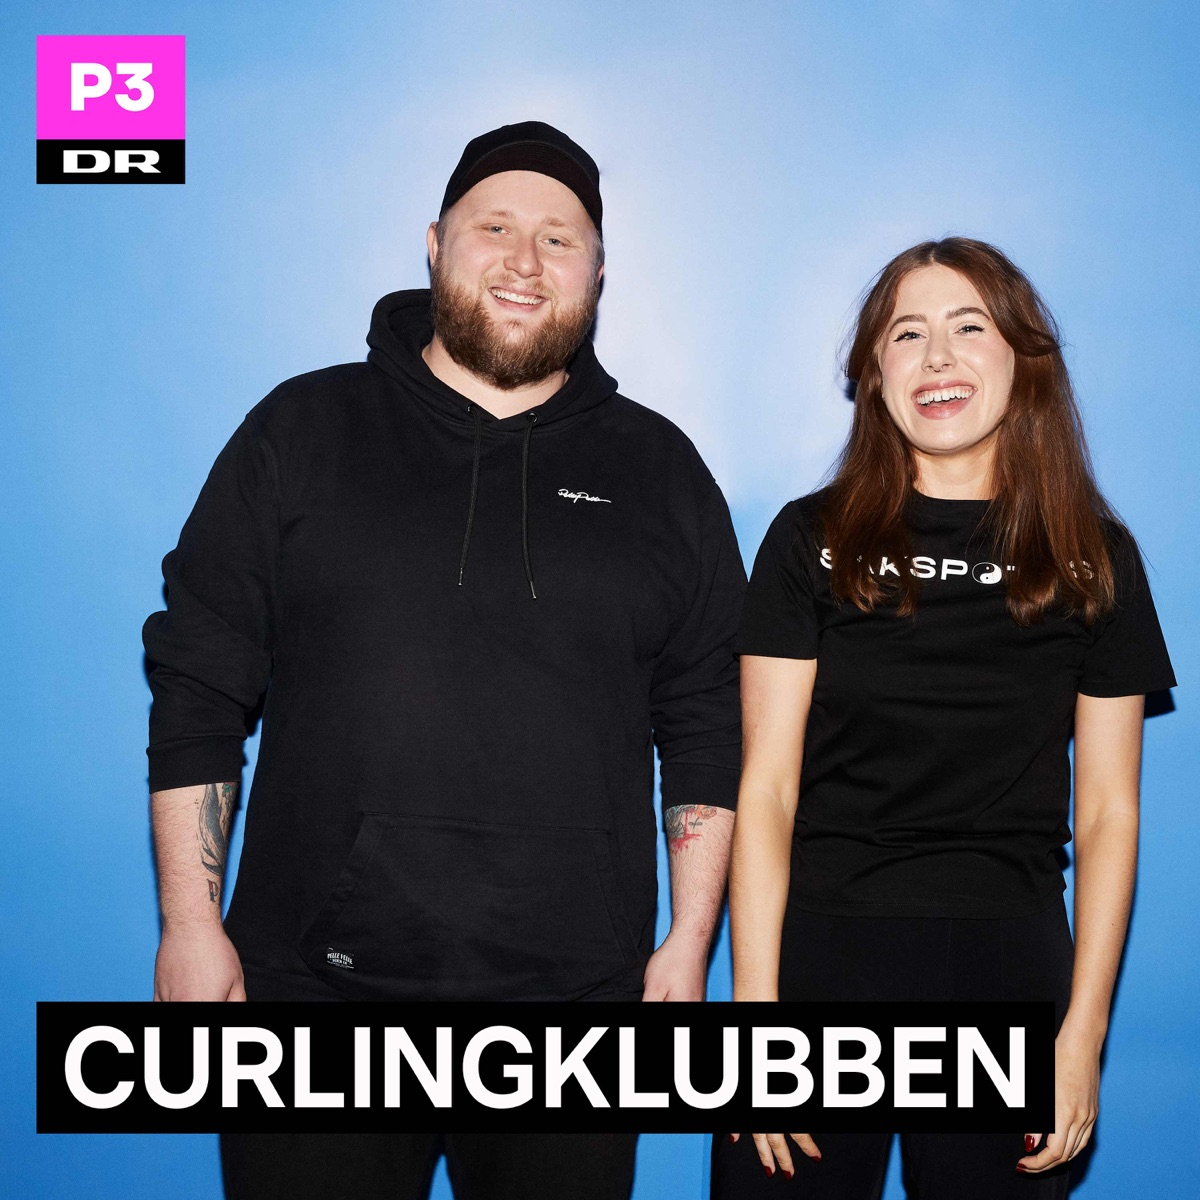 Curlingklubben... Teknisk set 3 - 1. jul 2020